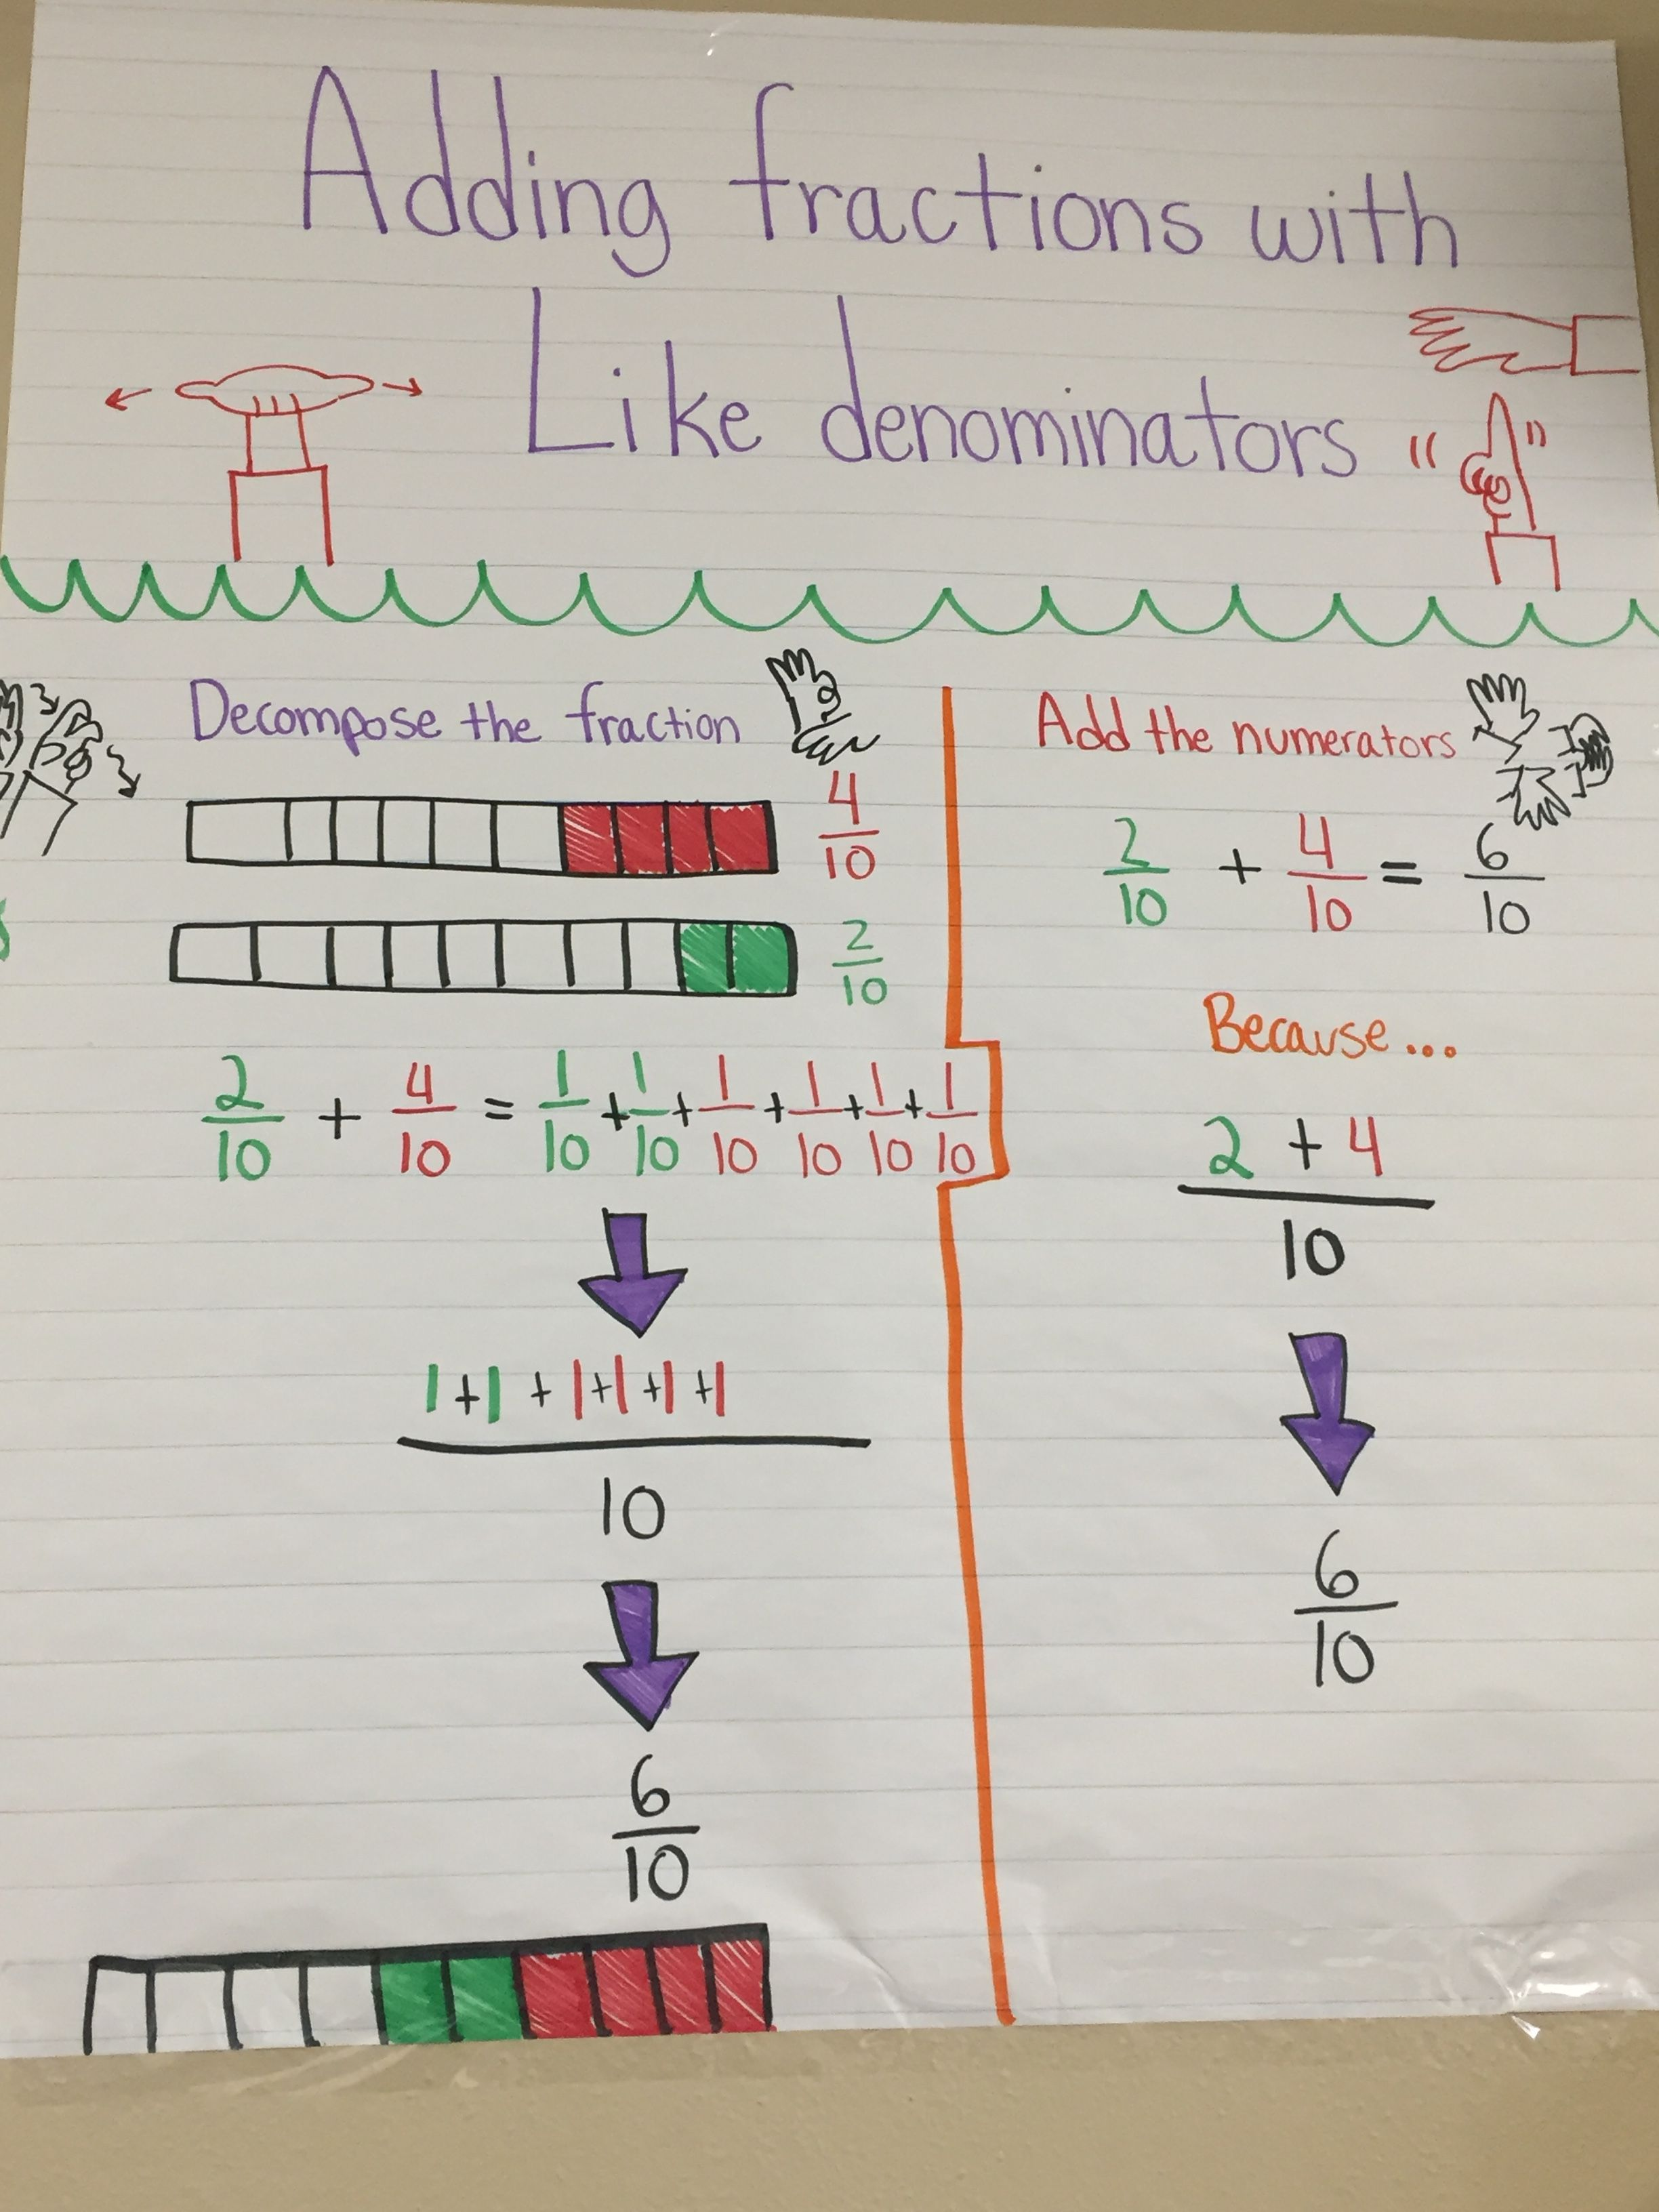 Adding Fractions With Like Denominators For Deaf Ed 4th